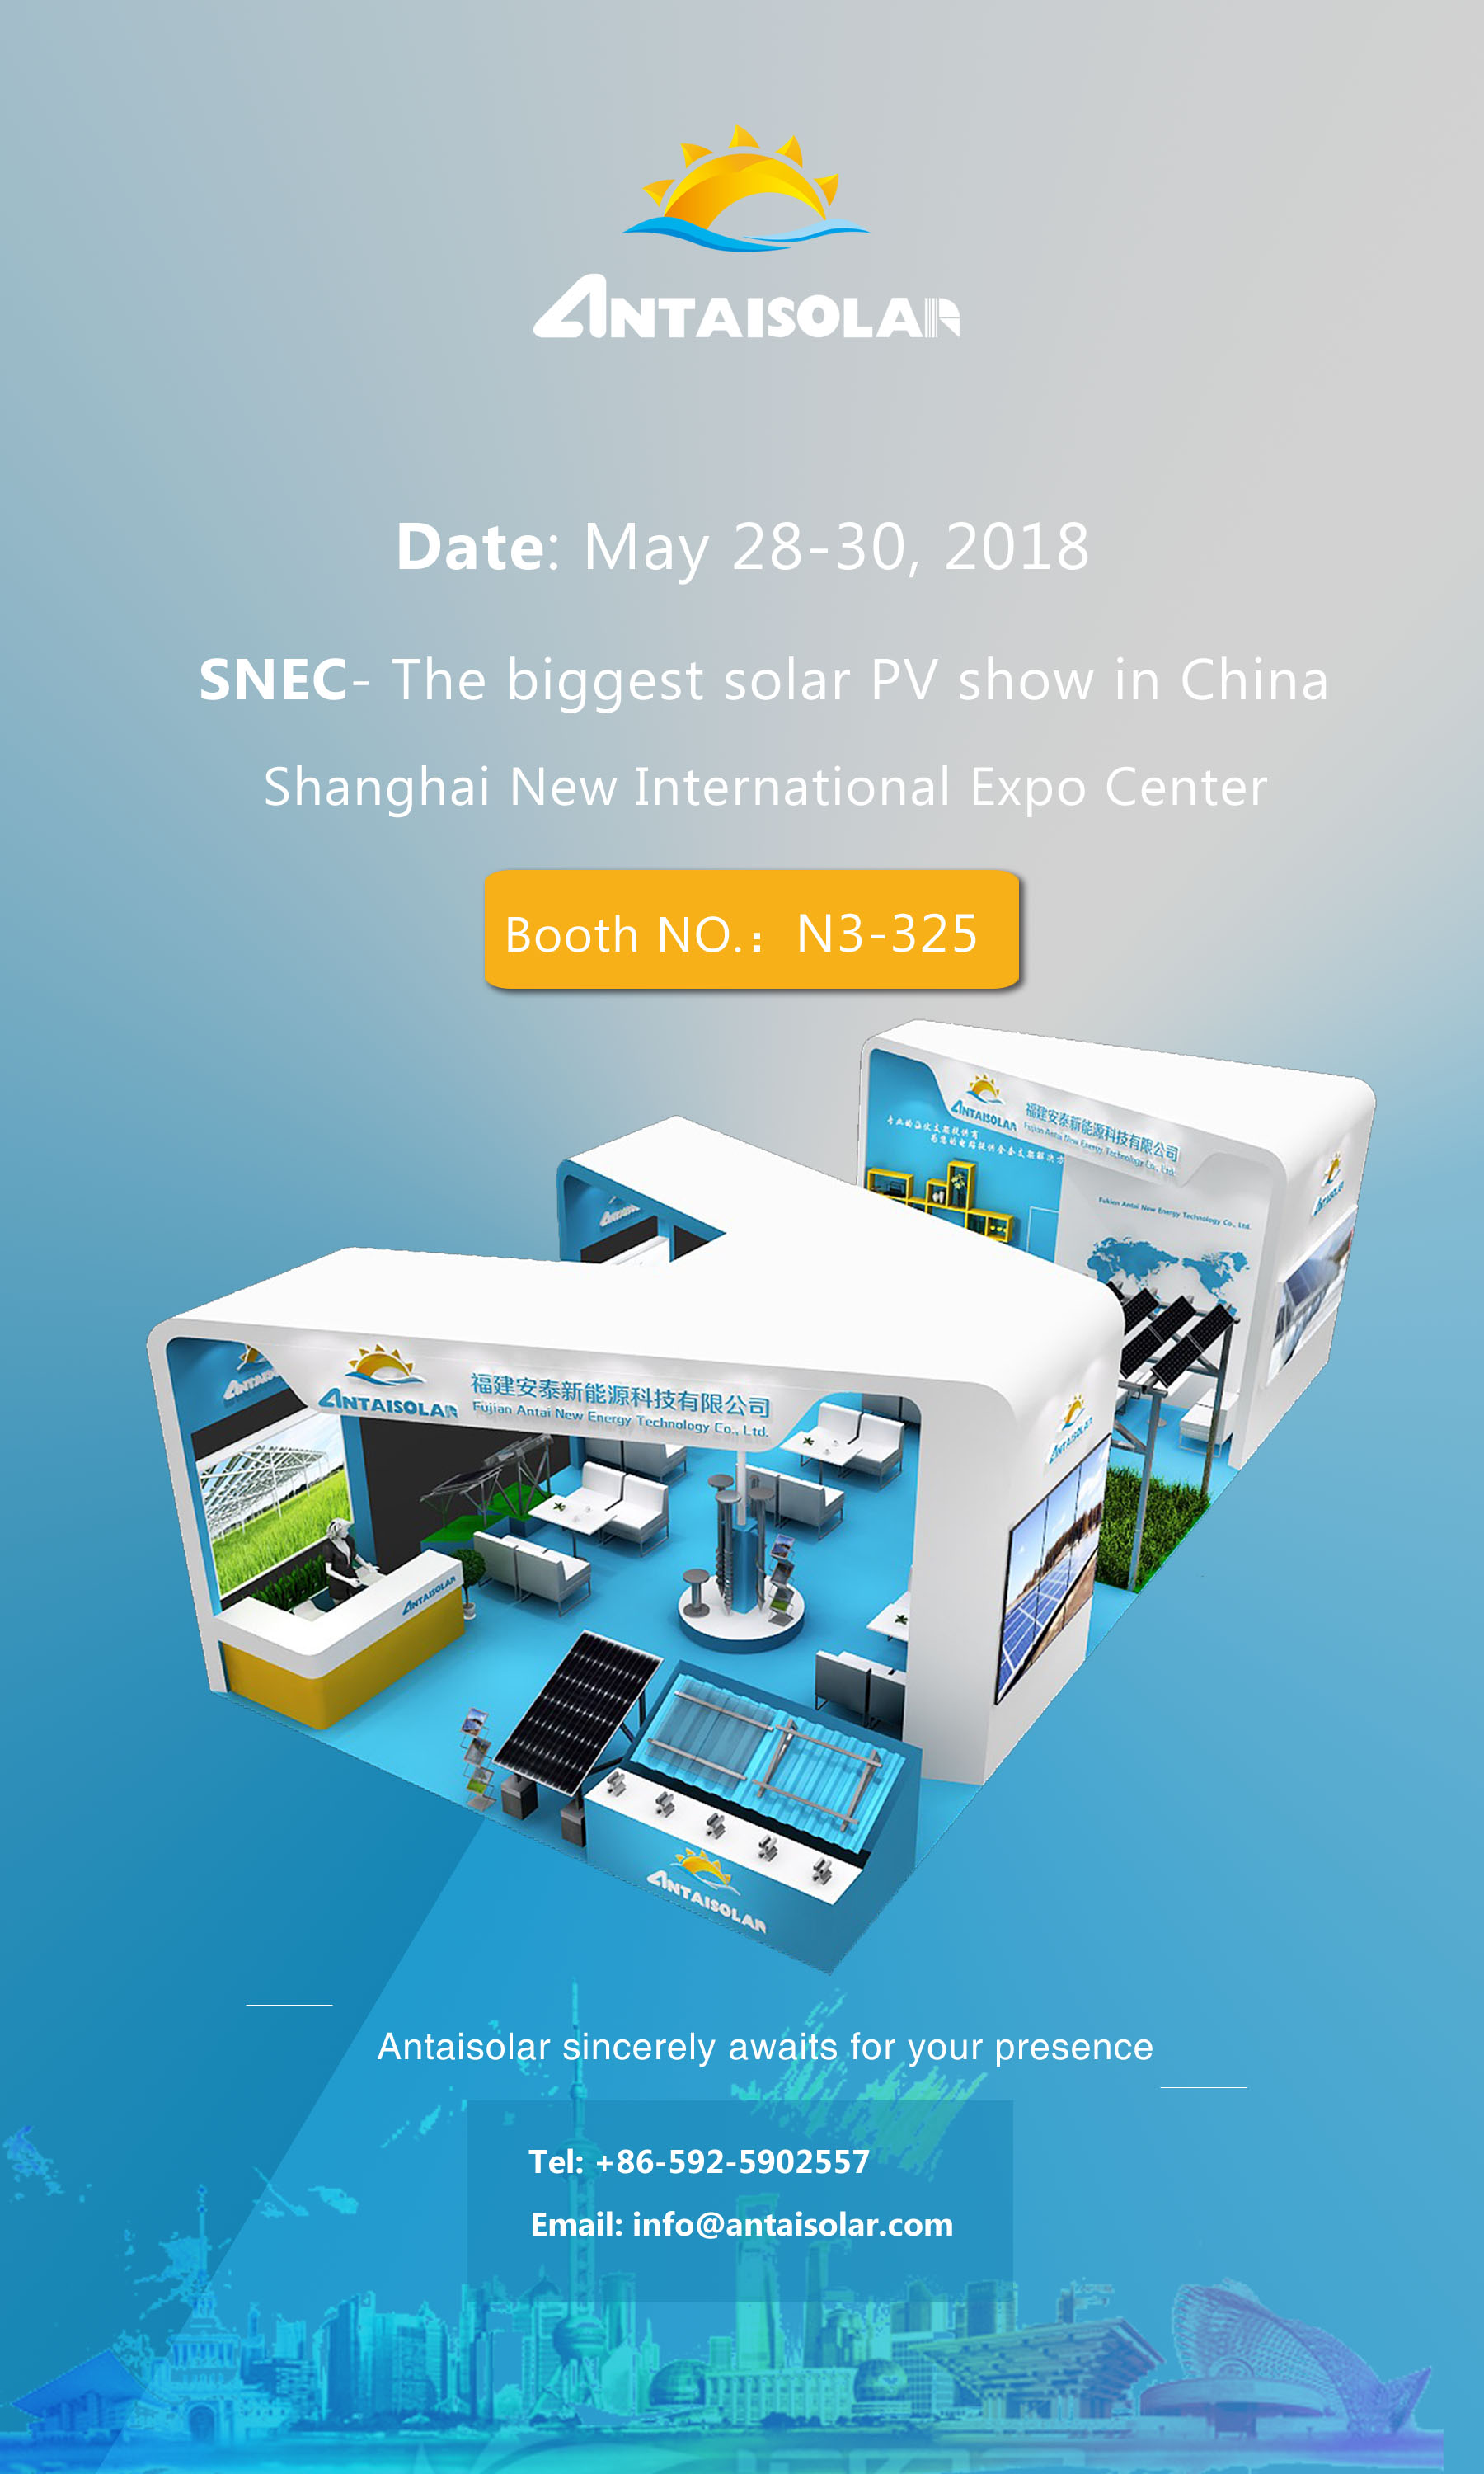 Antaisolar will exhibit the SNEC in China